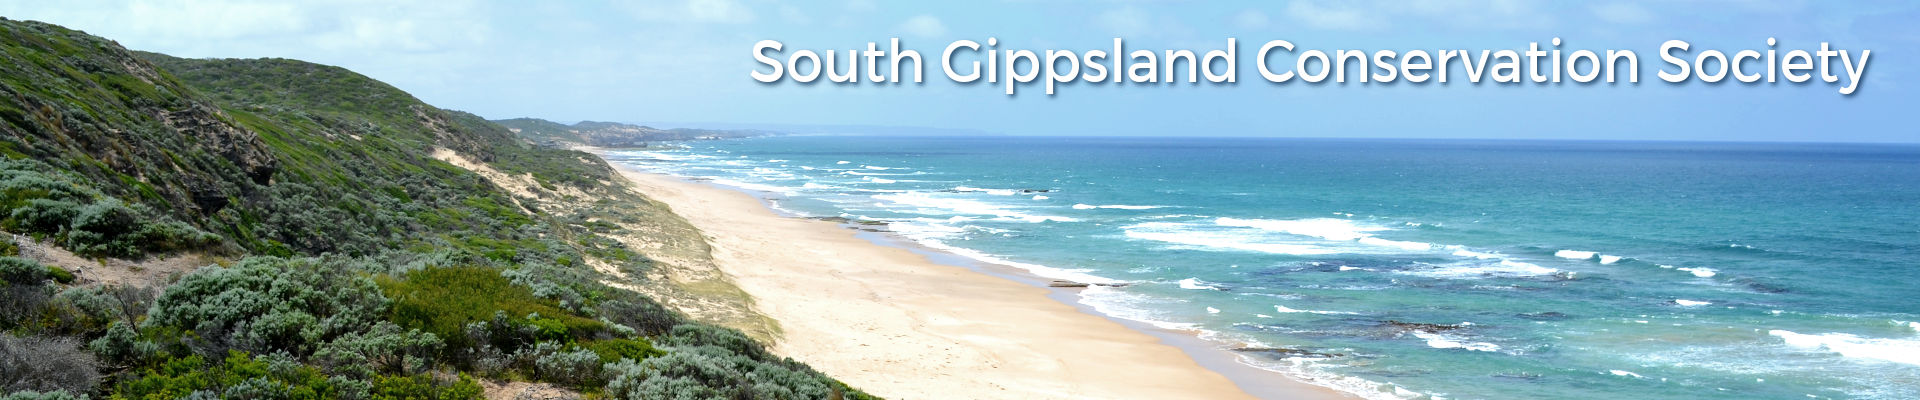 South Gippsland Conservation Society